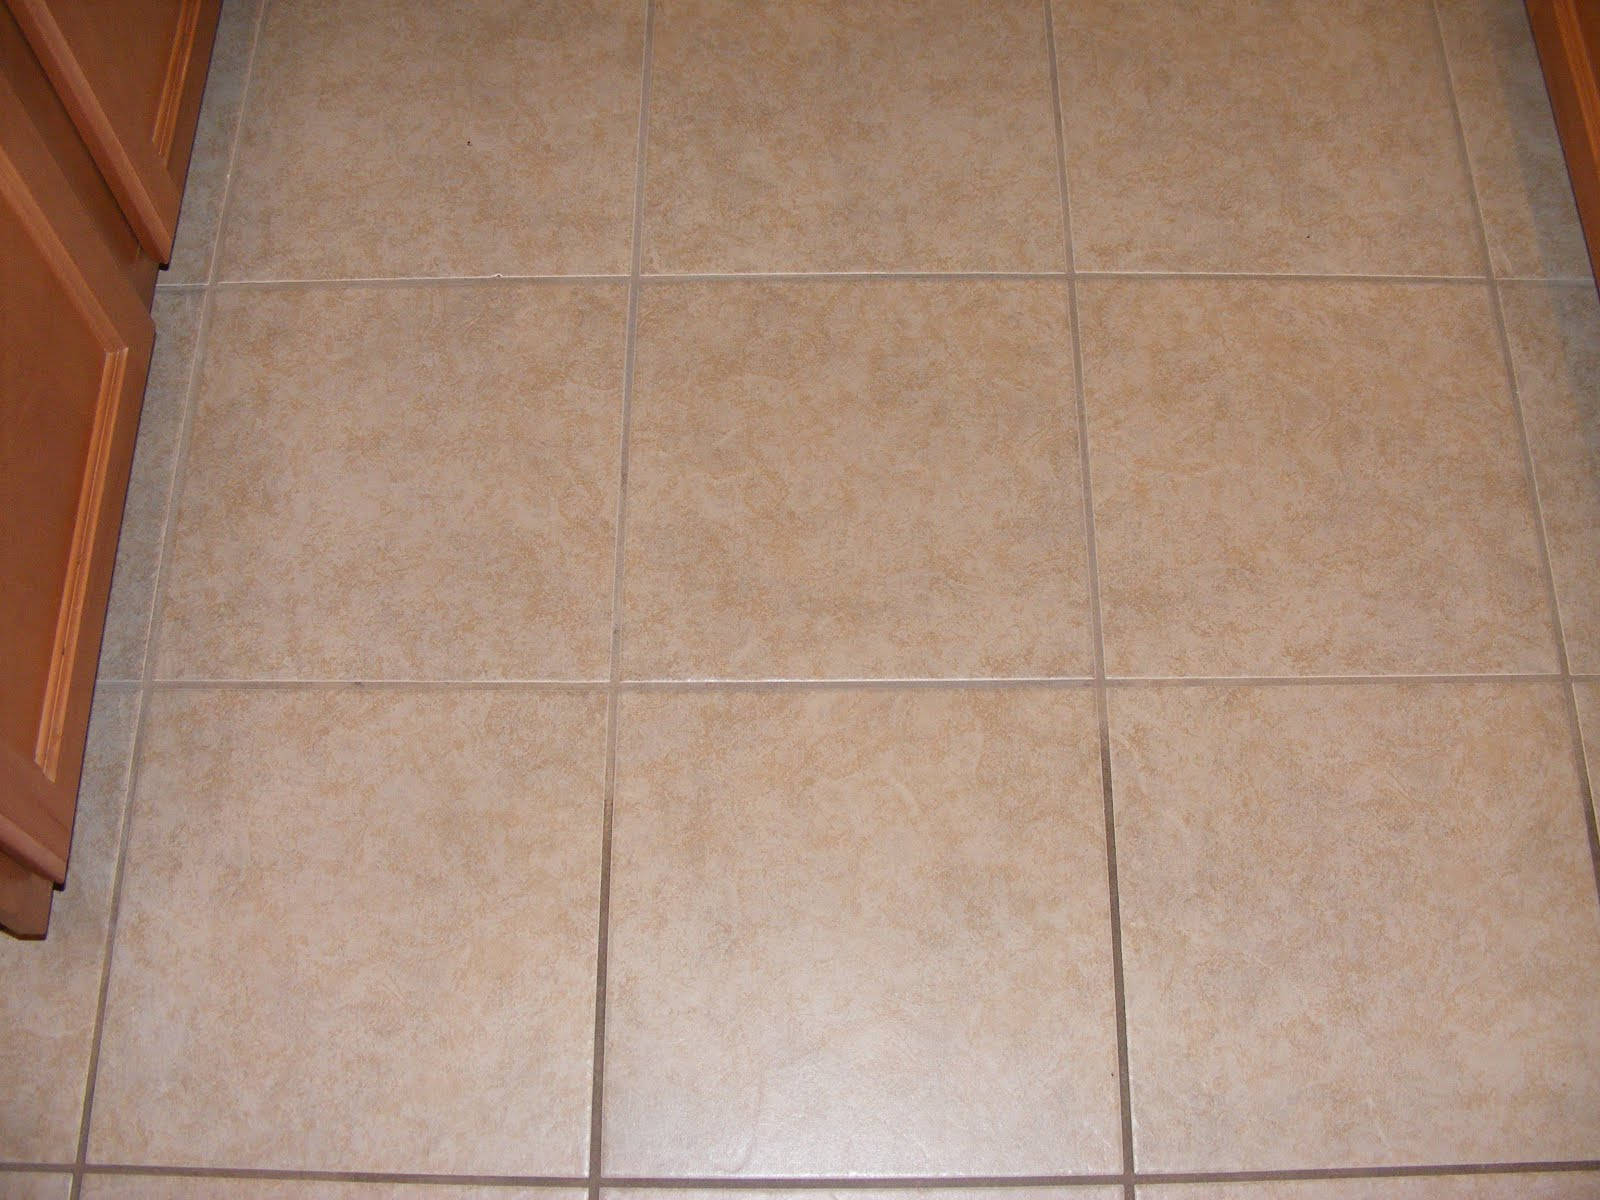 Amazing Grout Cleaner - Bathroom floor tile cleaning products